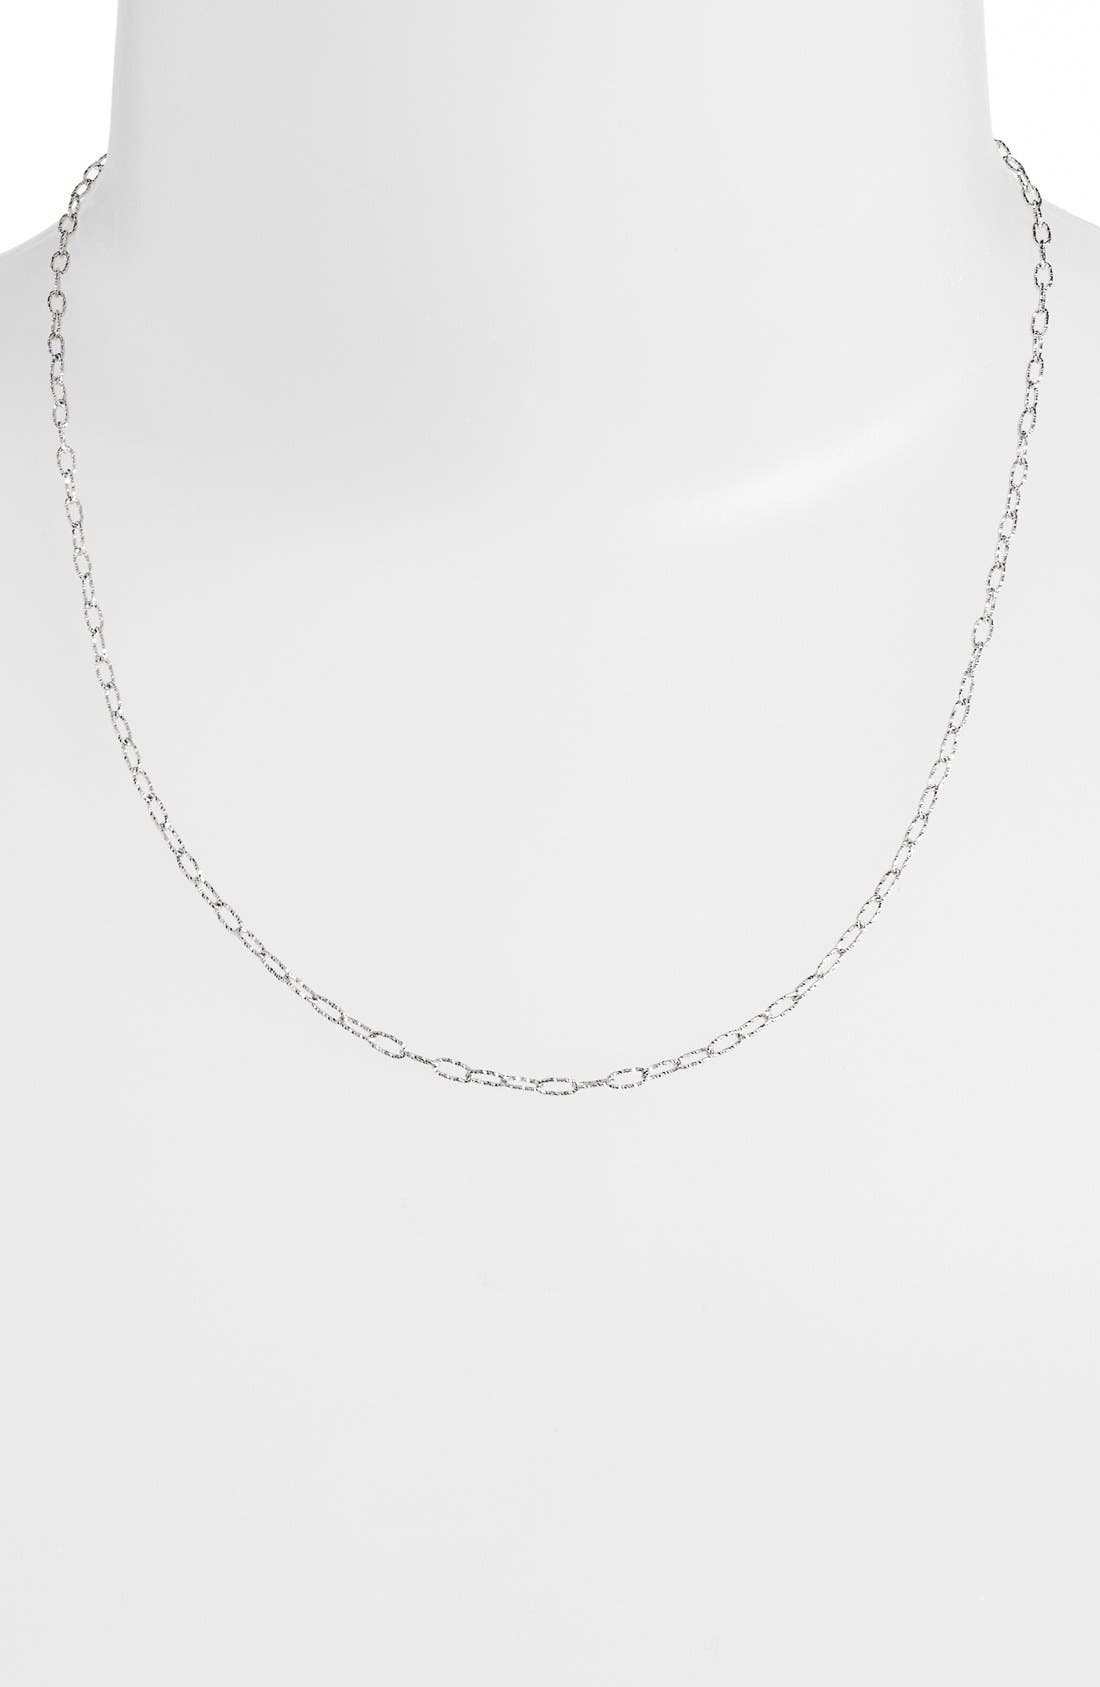 Textured Chain Necklace,                         Main,                         color, White Gold